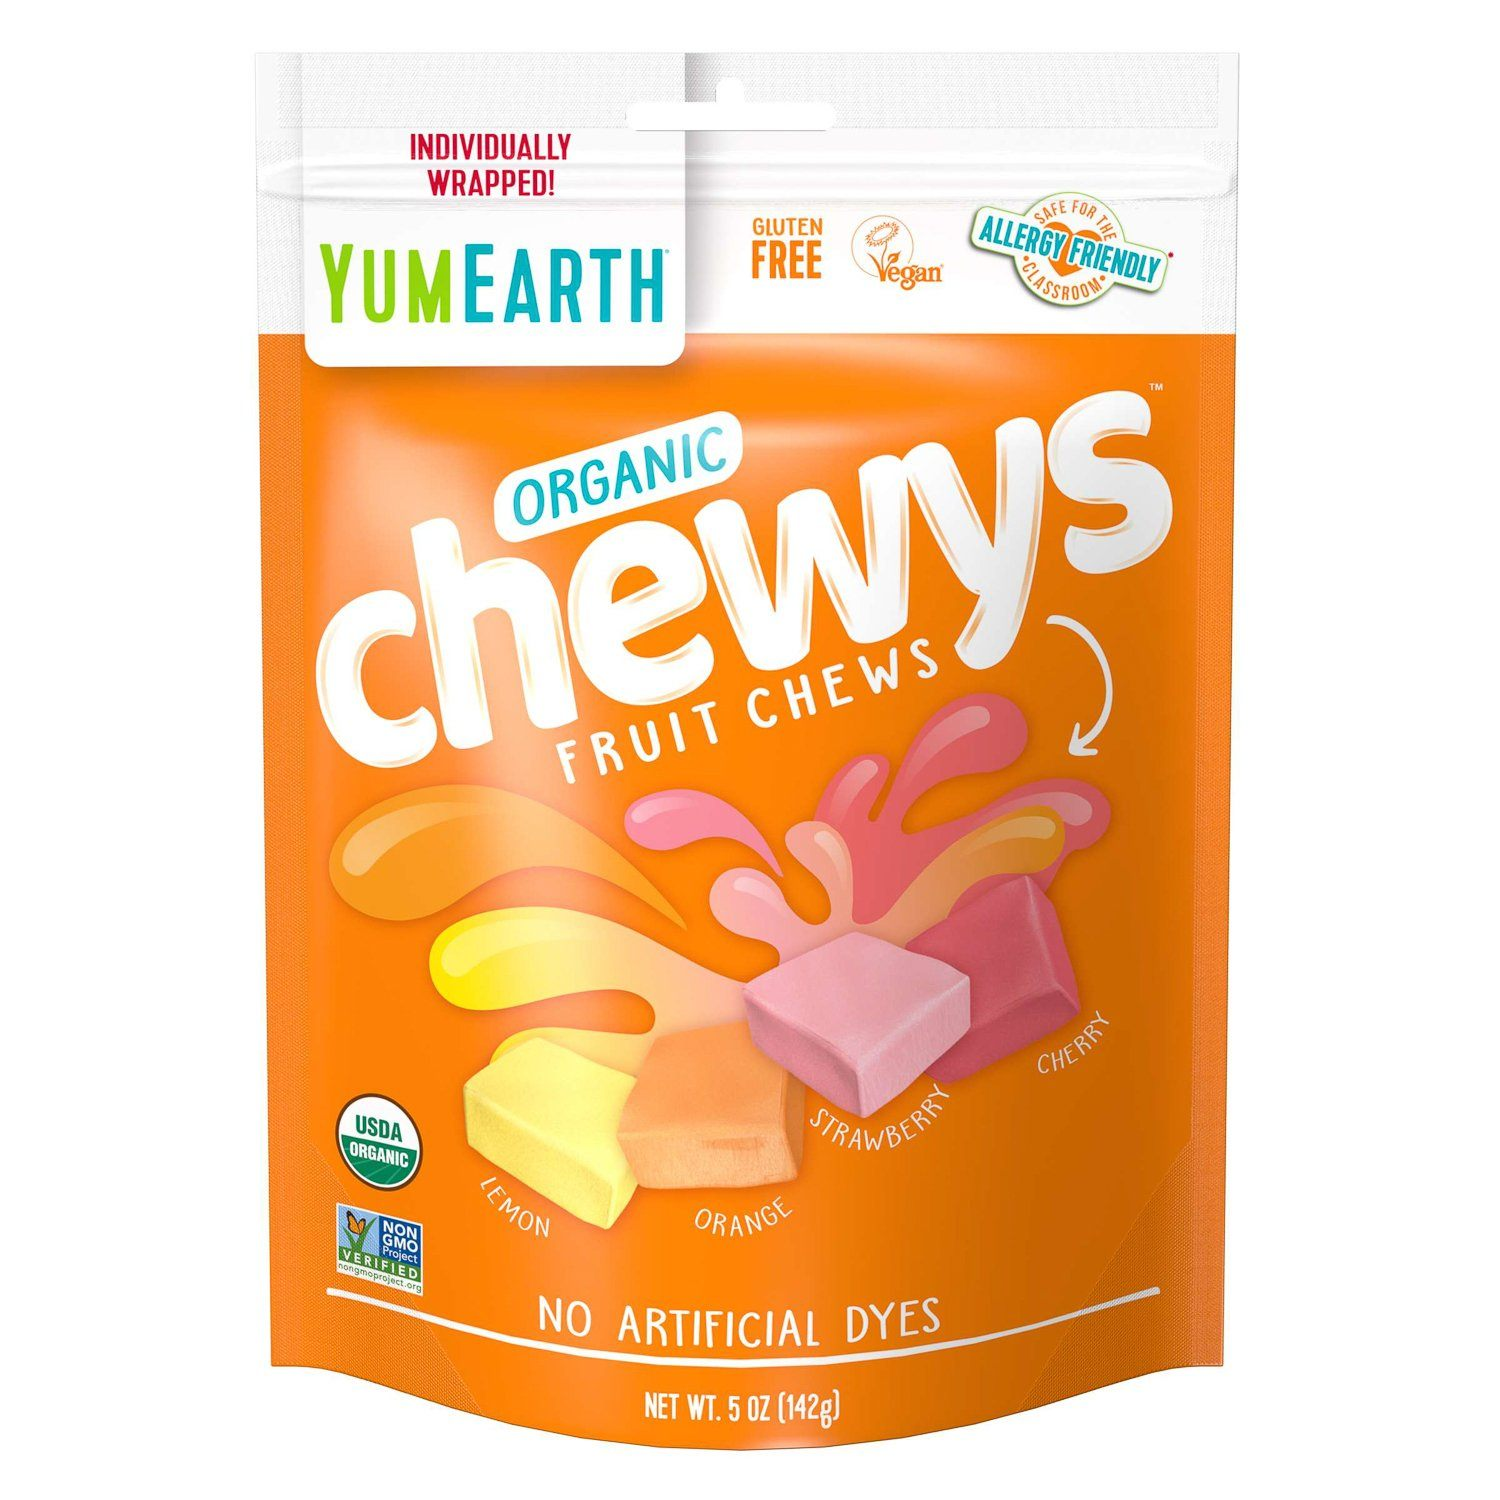 YumEarth Organic Chewy Candies YumEarth Organic Chewys 5 Ounce